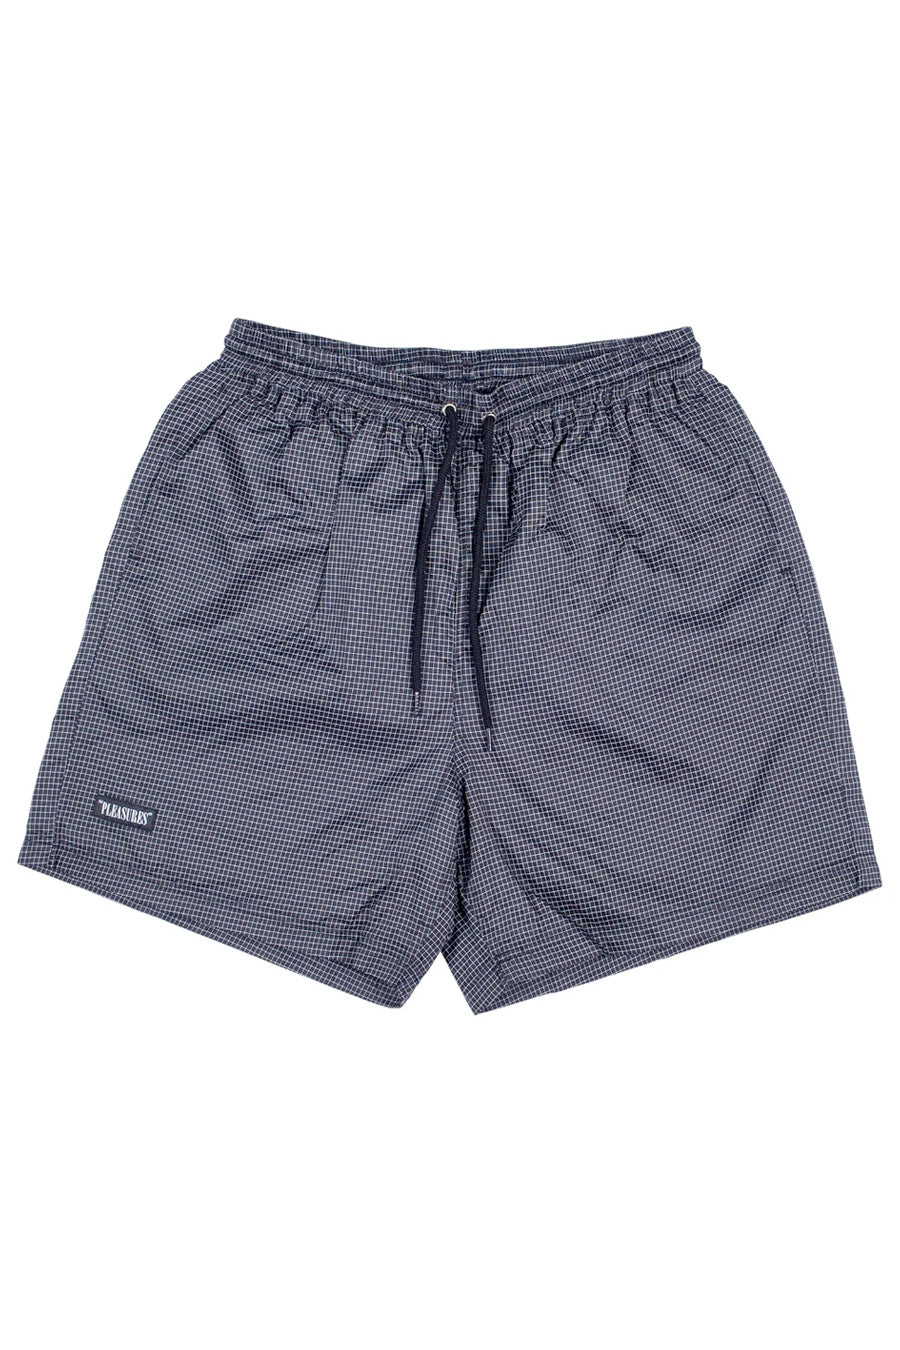 Pleasures - Black Brick Active Shorts